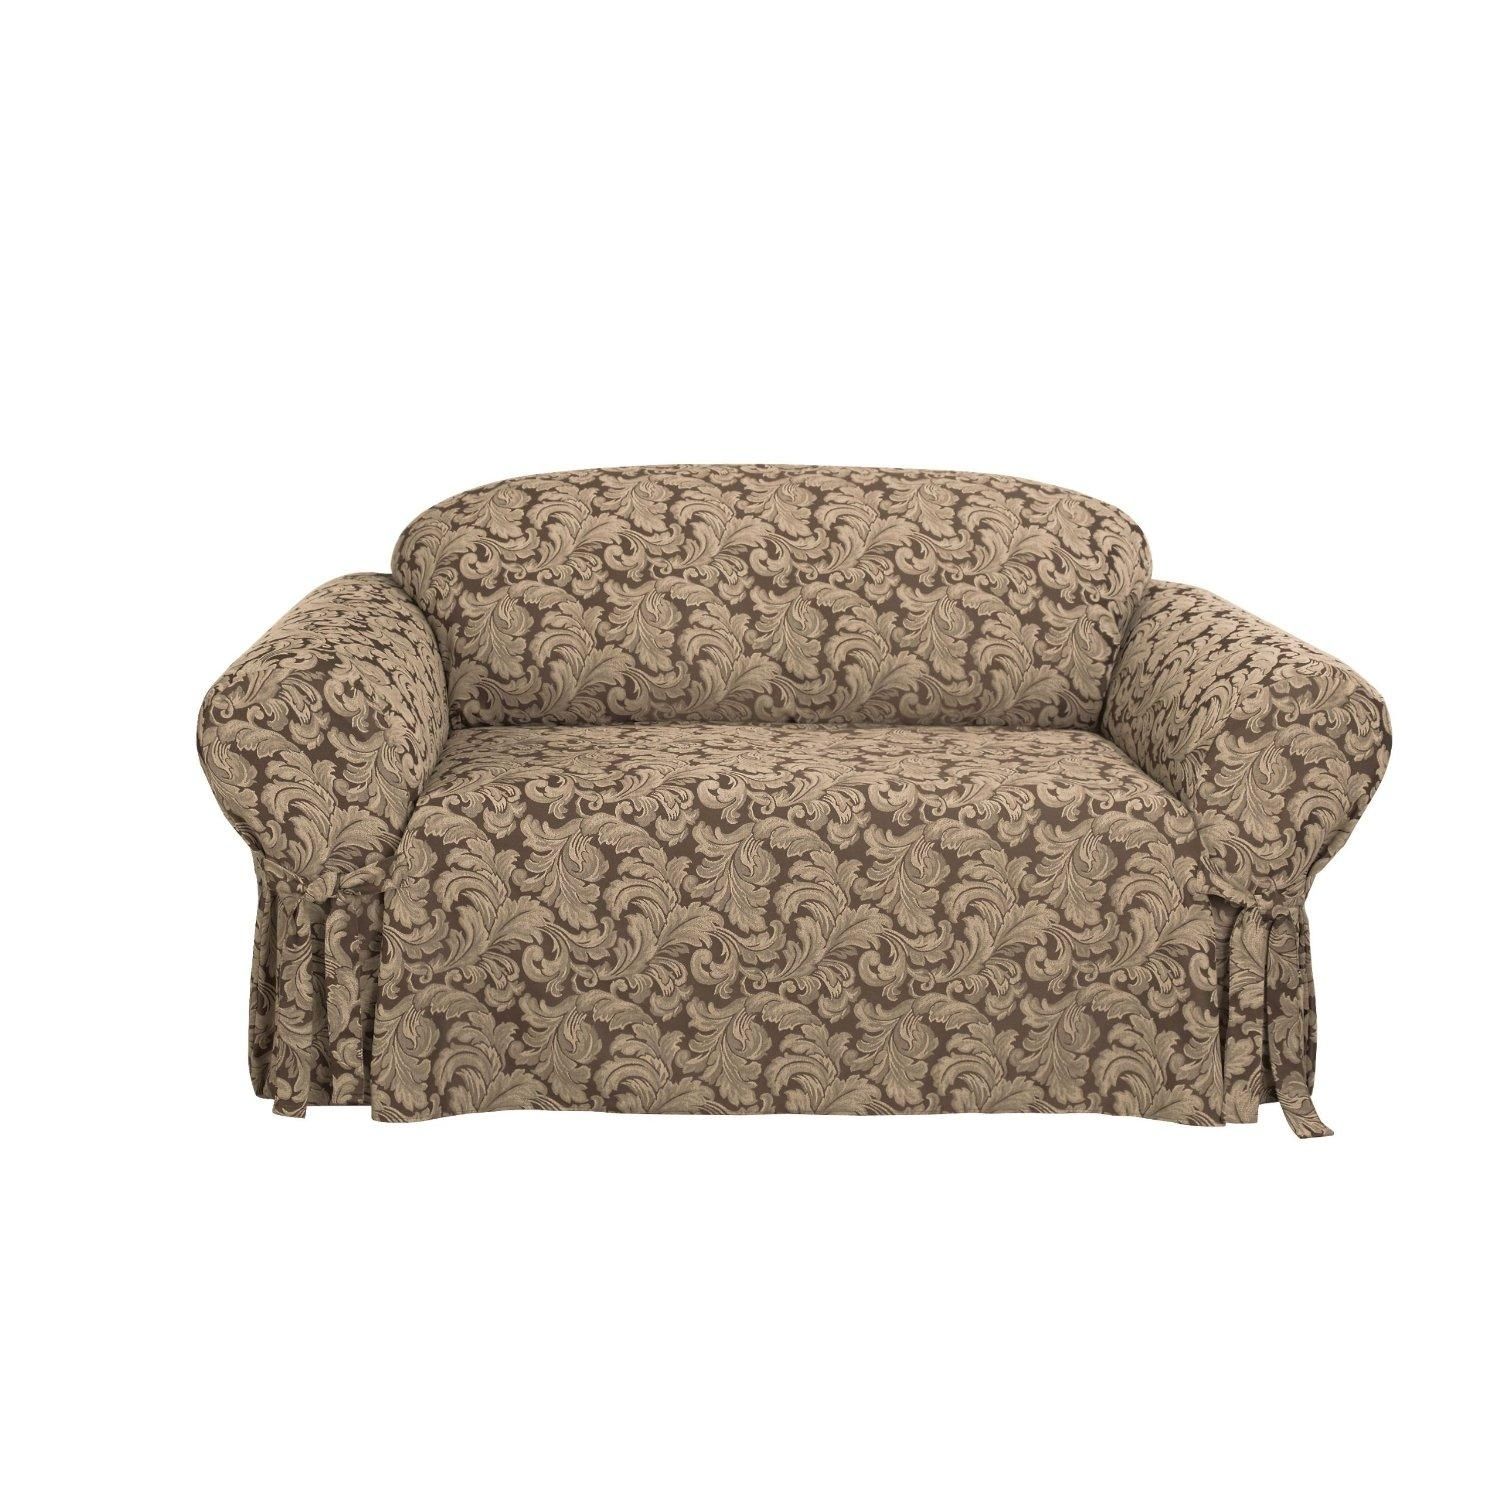 sofa slipcover pattern teddy bed 20 inspirations patterned slipcovers ideas